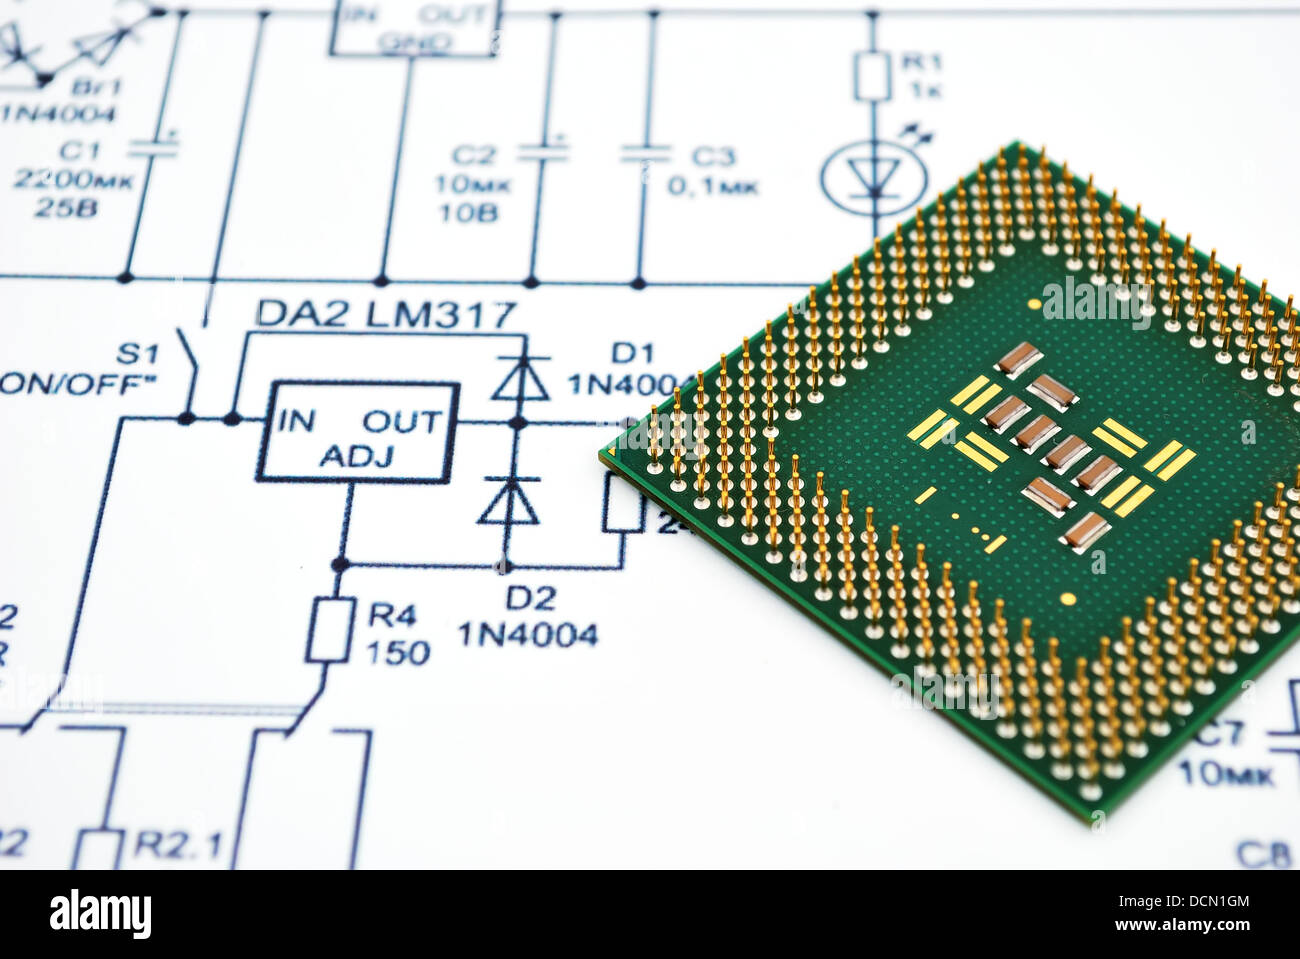 Cpu Plug Wiring Diagram Library And Stock Image